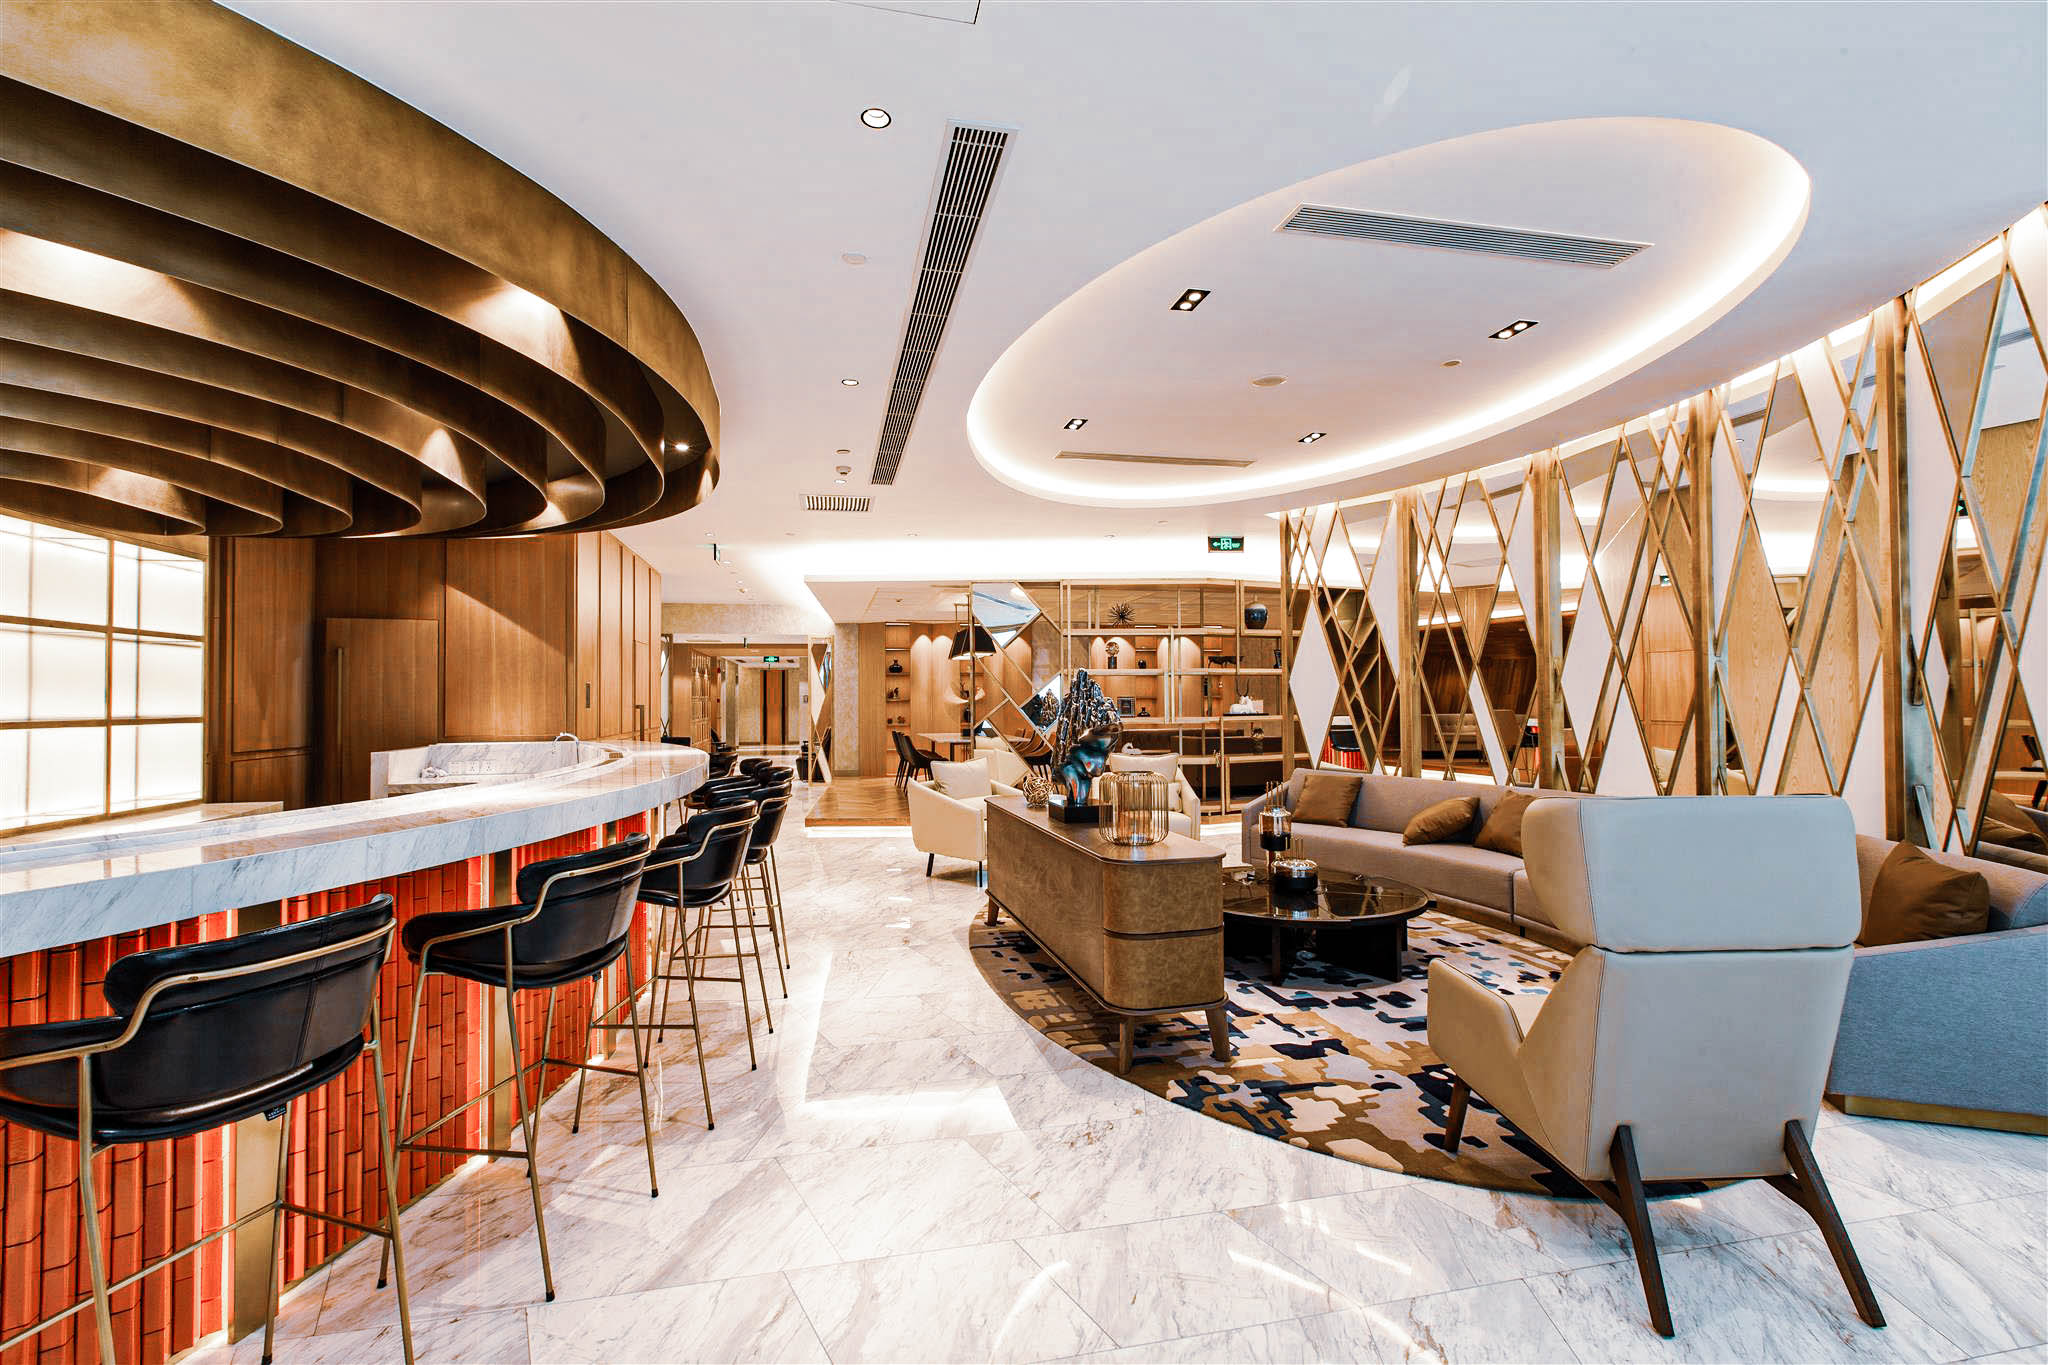 The bar and lounge at The City Society (Credit: Arcc Spaces)